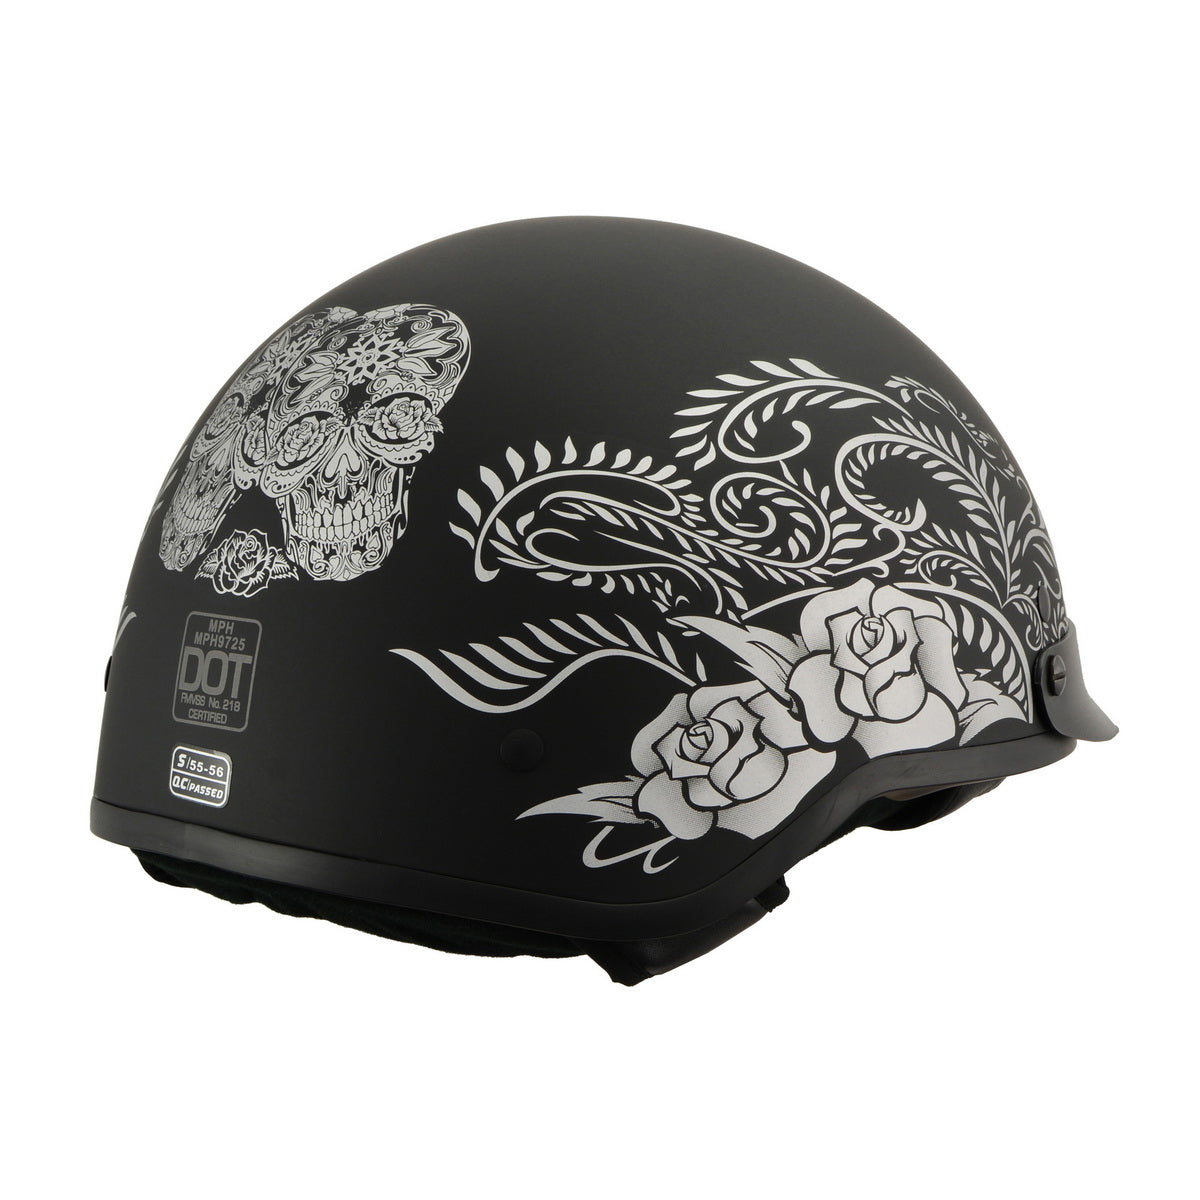 Milwaukee Performance Helmet MPH9725DOT Matte Black DOT Helmet with